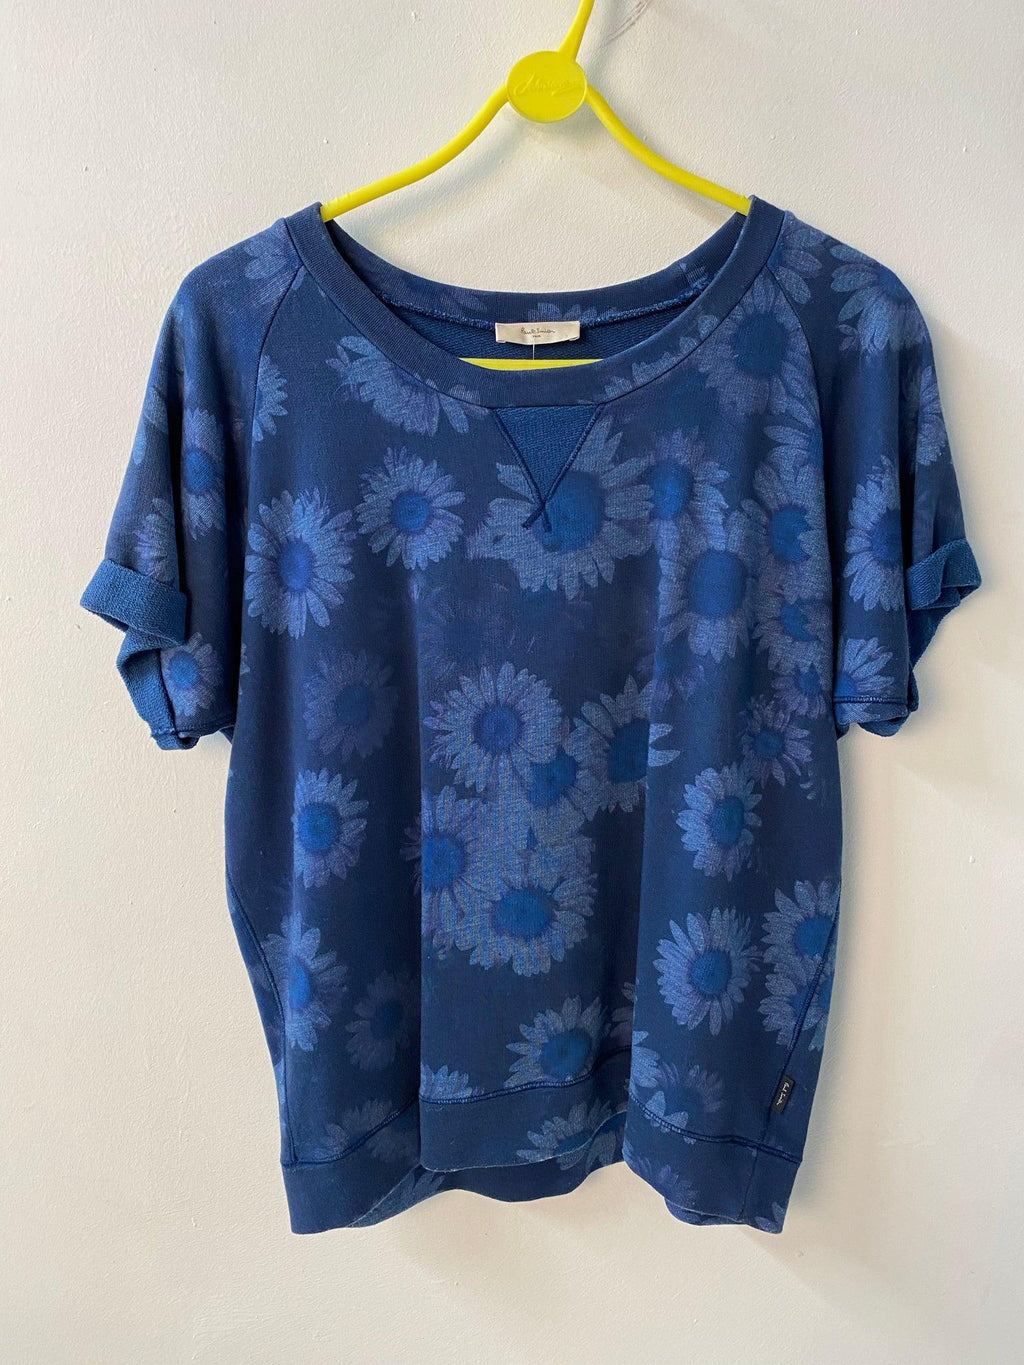 Paul Smith Sweatshirt Blue Floral Pattern Size S